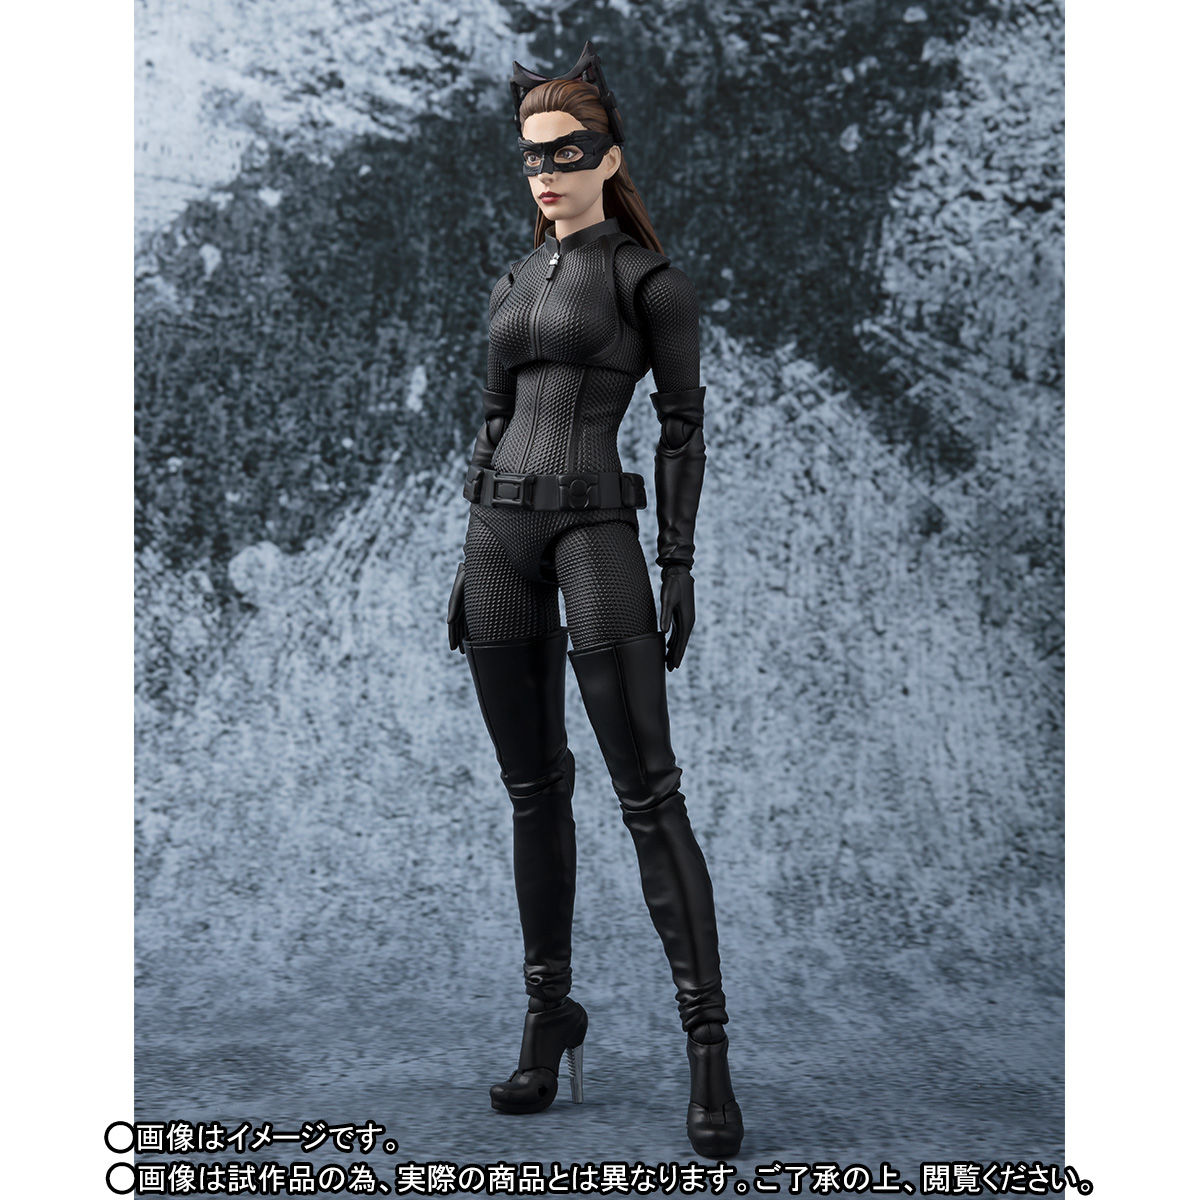 SH-Figuarts-Catwoman-002